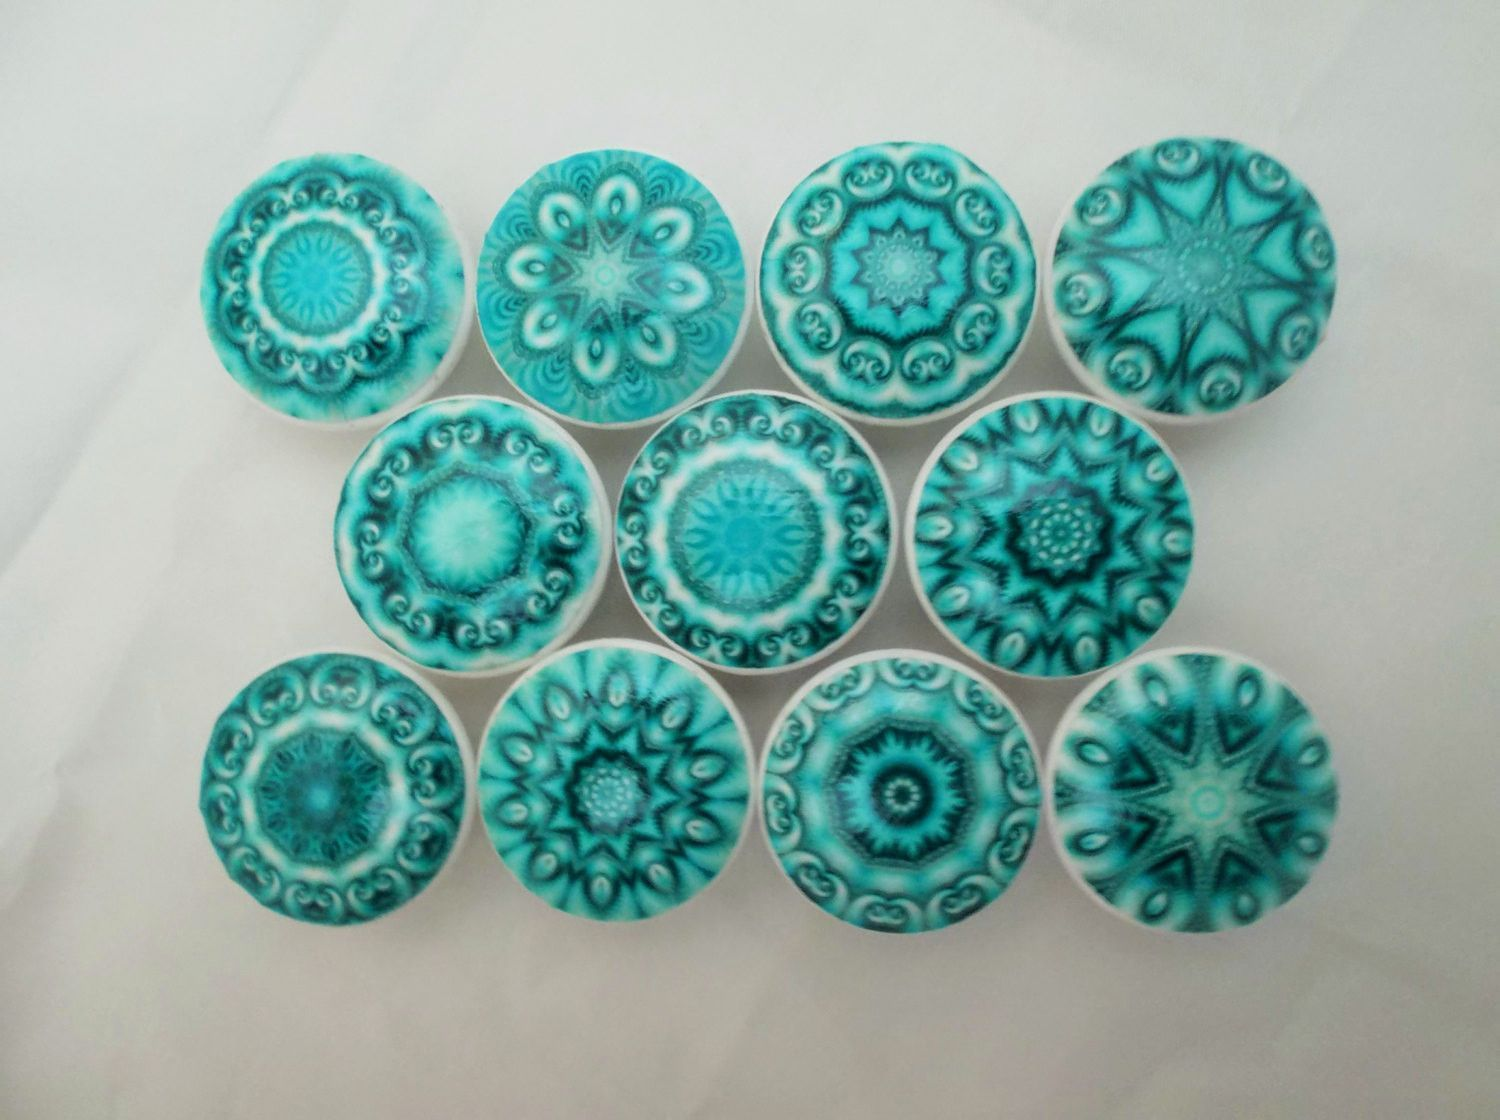 Set Of 10 Aqua Blue Mandala Cabinet Knobs PatternMandala PrintTurquoise Kitchen